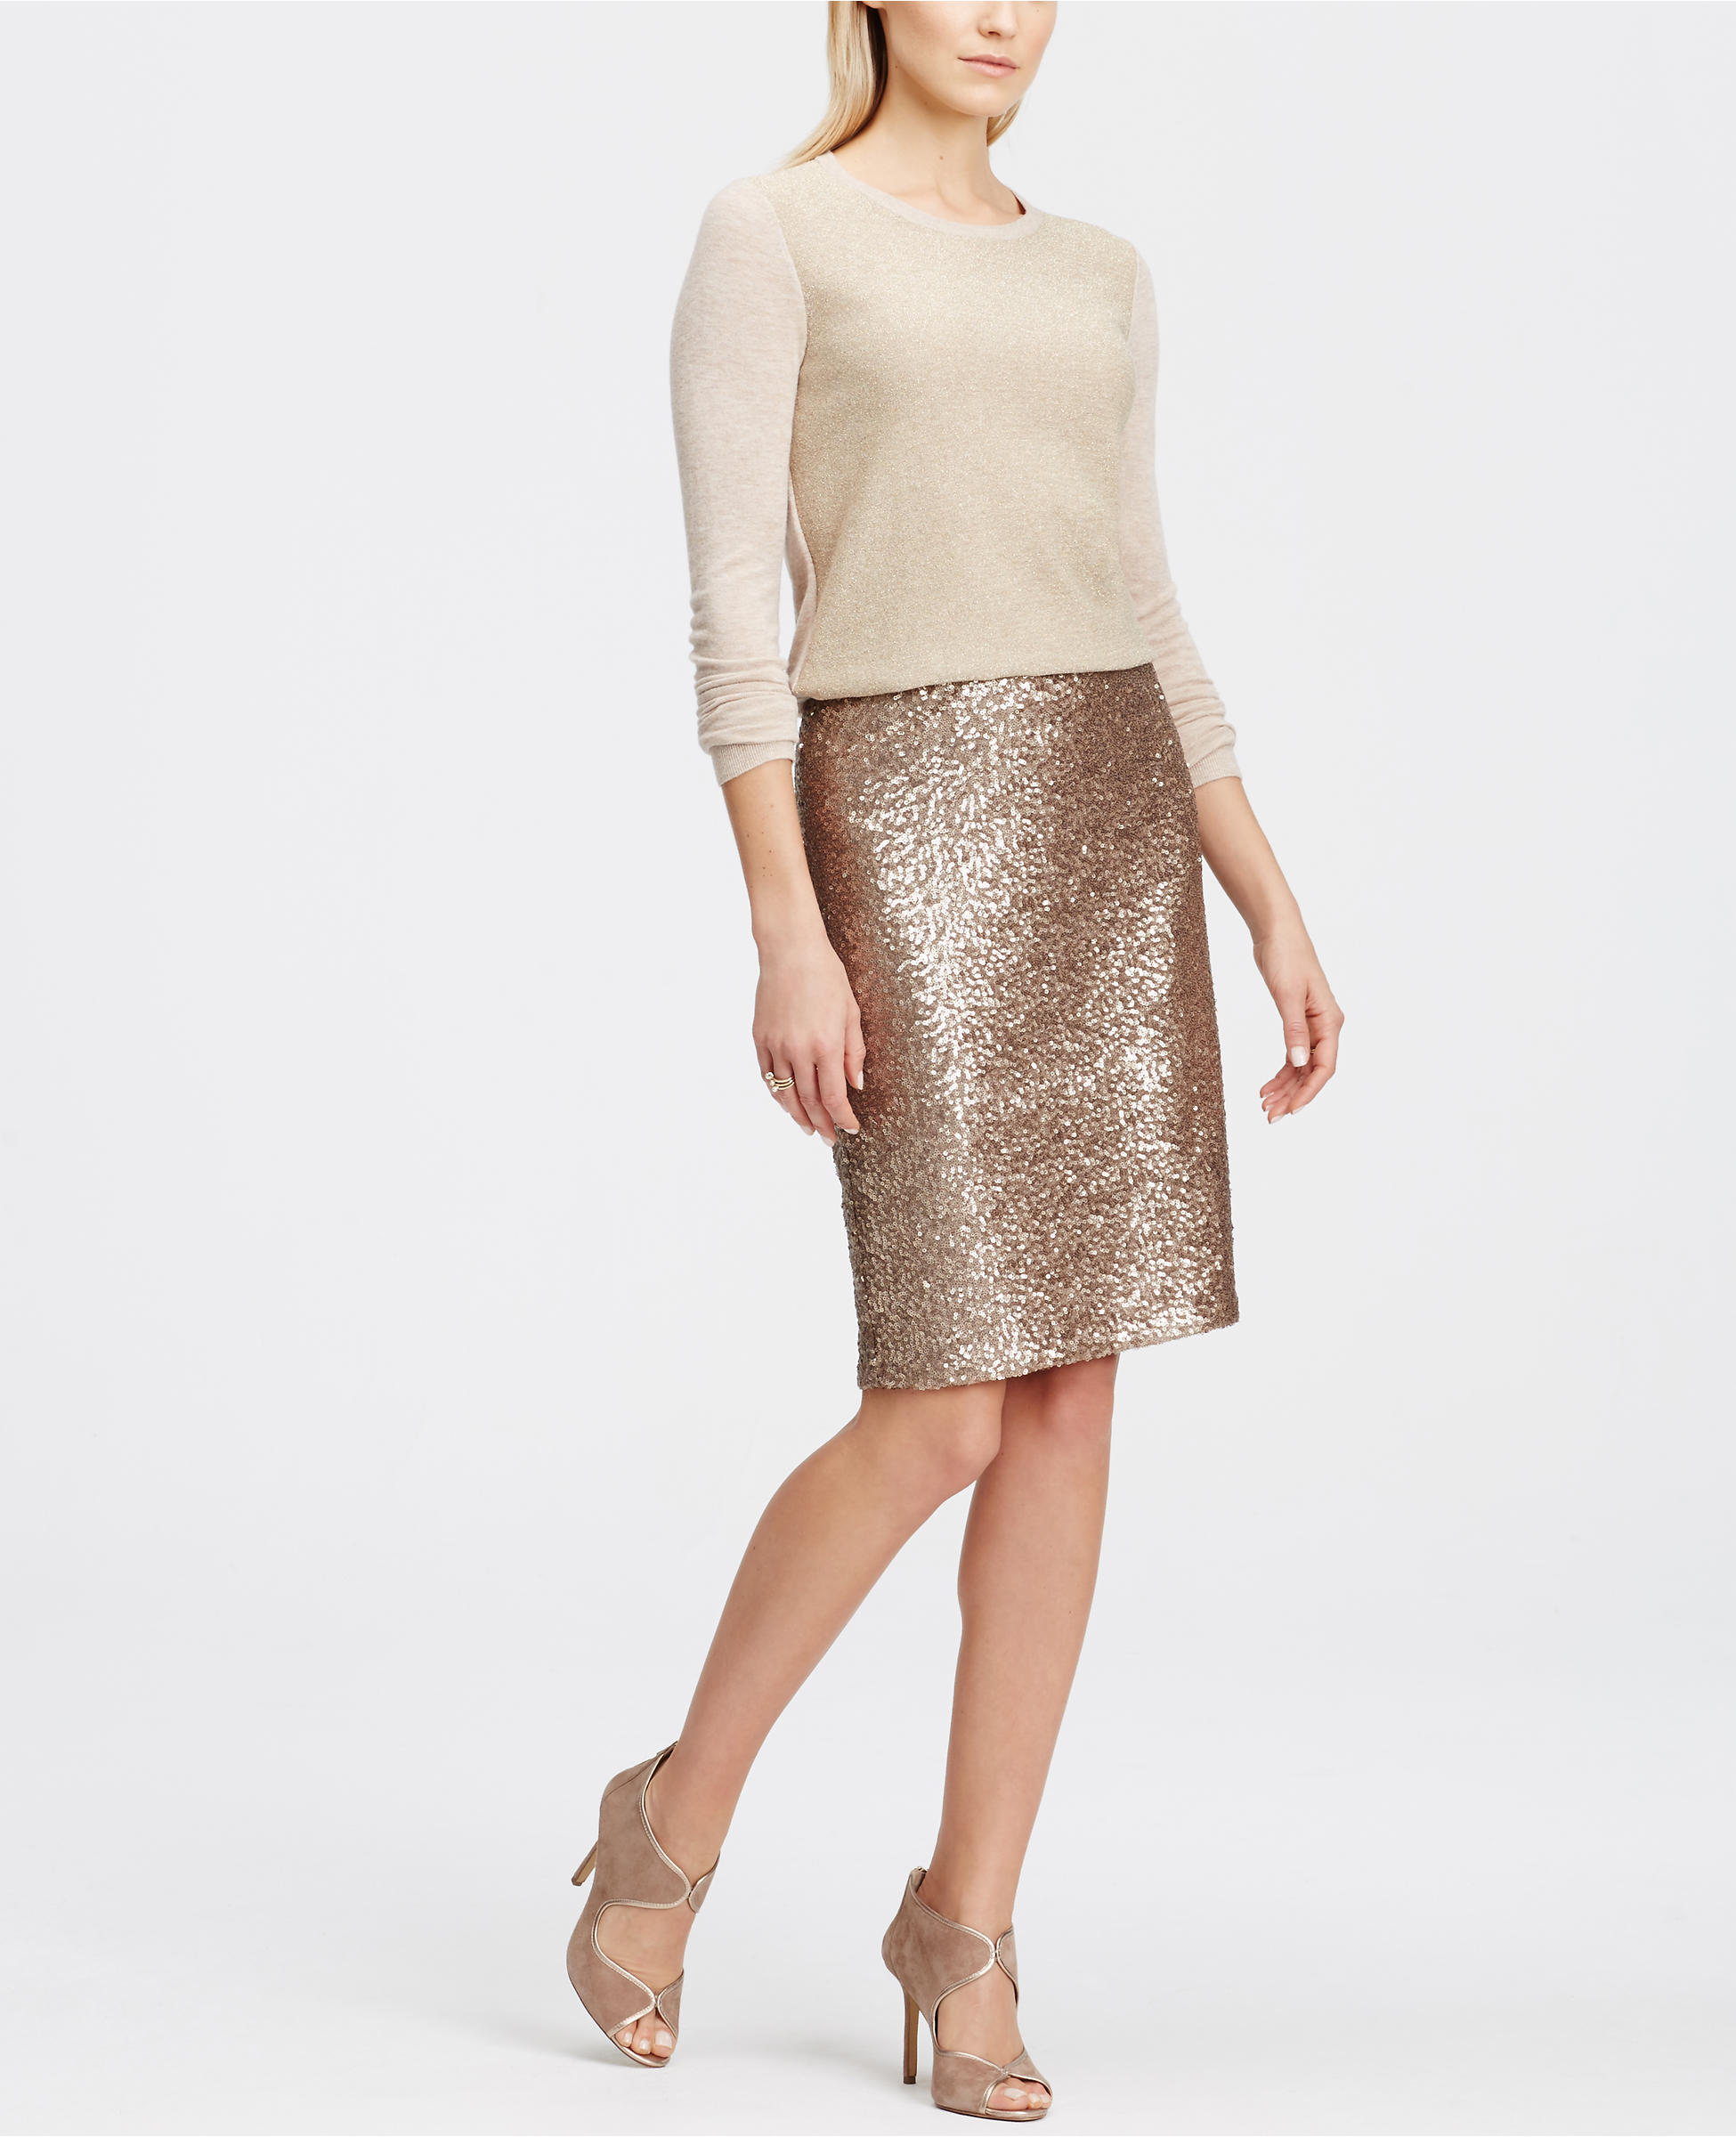 Gold sequin pencil skirt - on sale for $64.50!